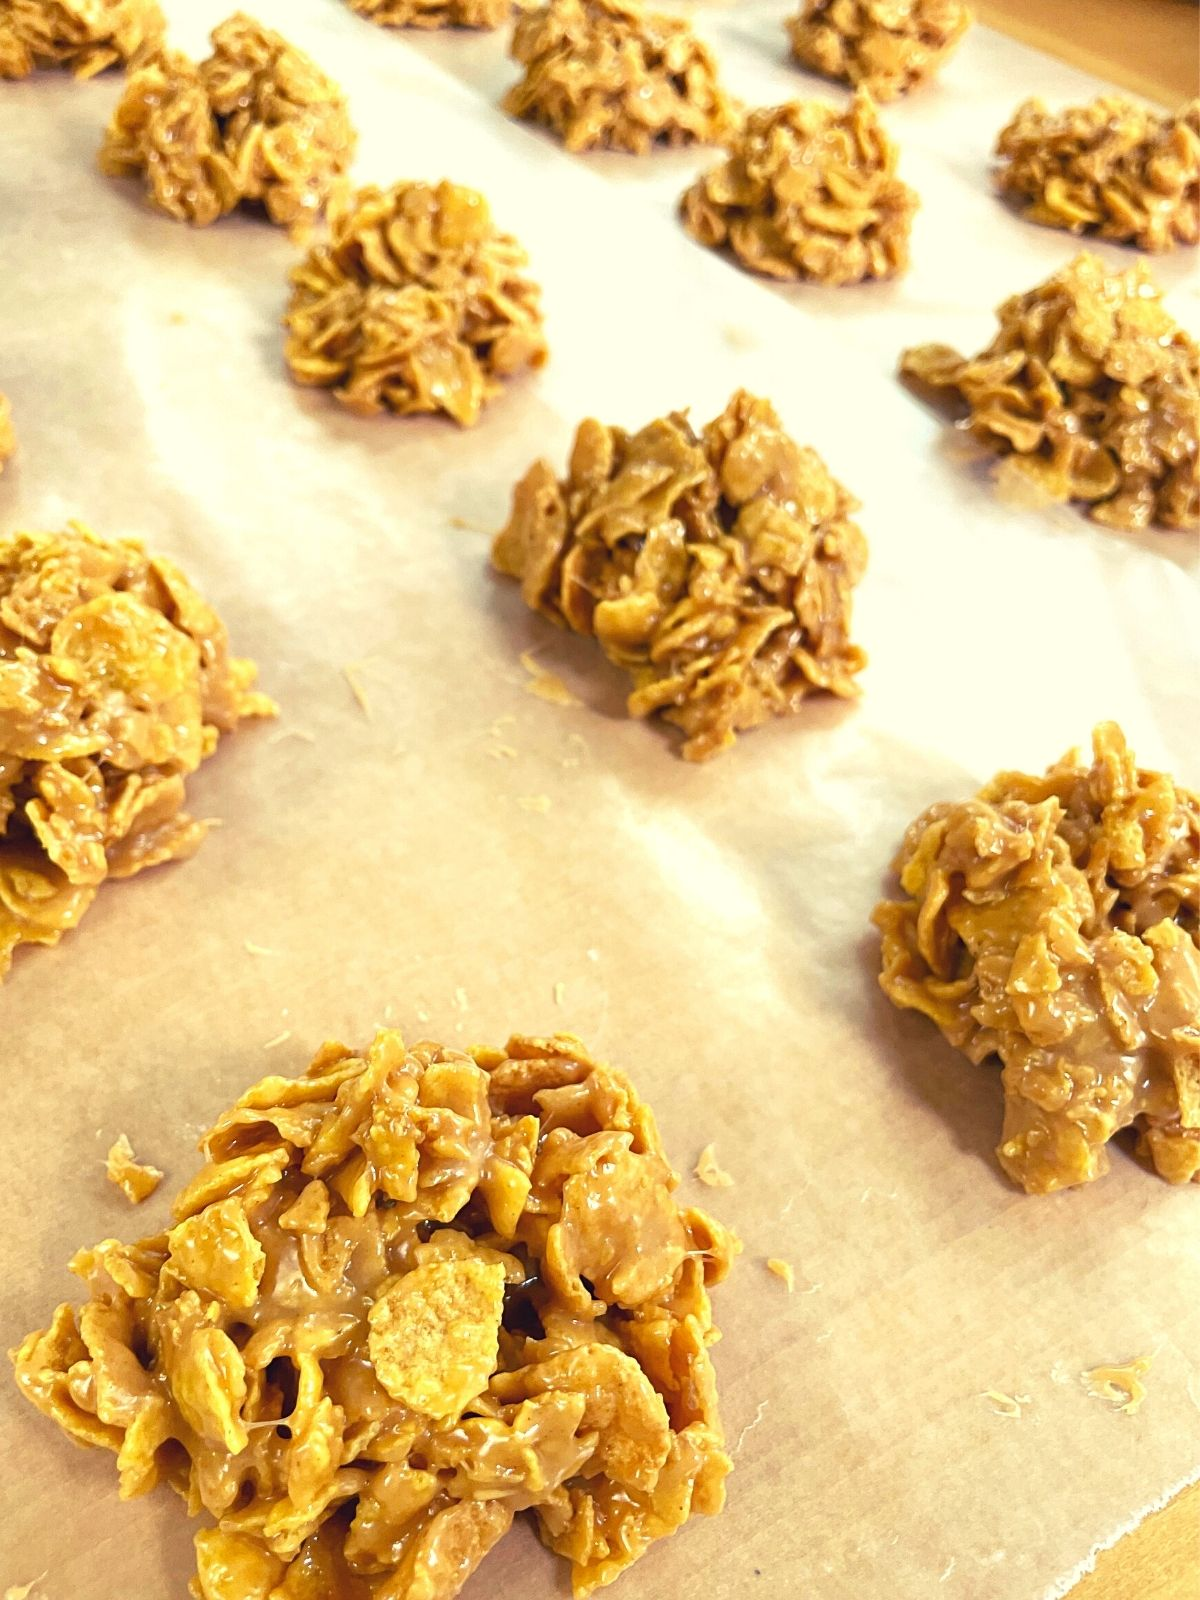 close up of finished cornflake candy cooling on wax paper.